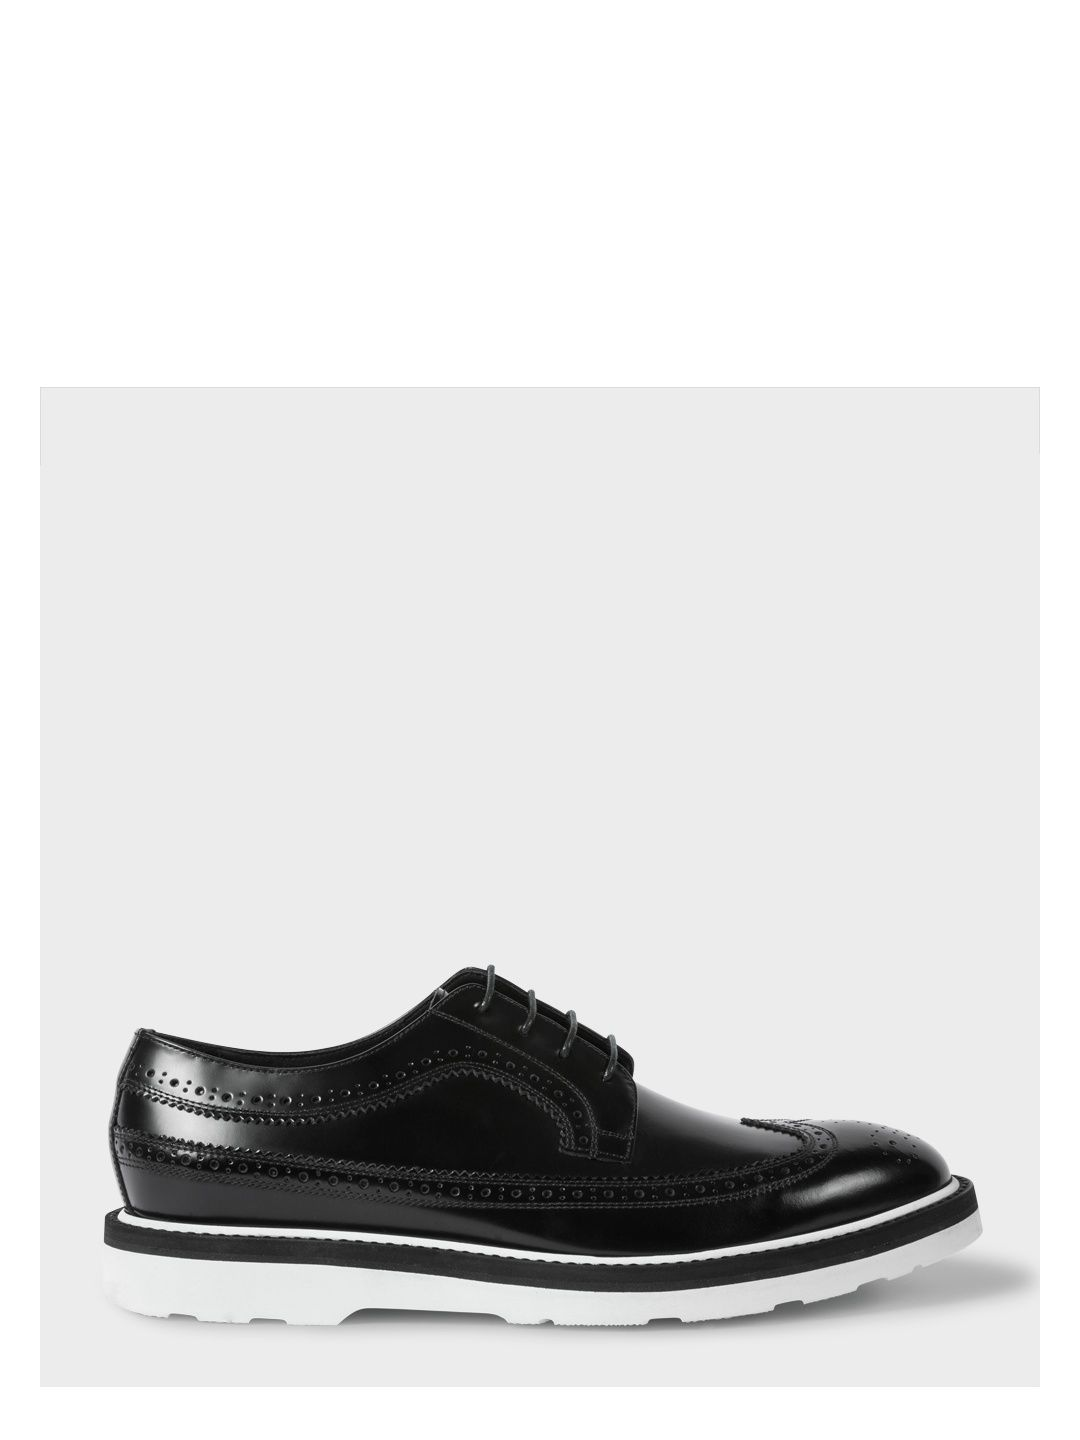 66937166c9c PAUL SMITH Men's Black Leather 'Grand' Brogues With White Soles. #paulsmith  #shoes #